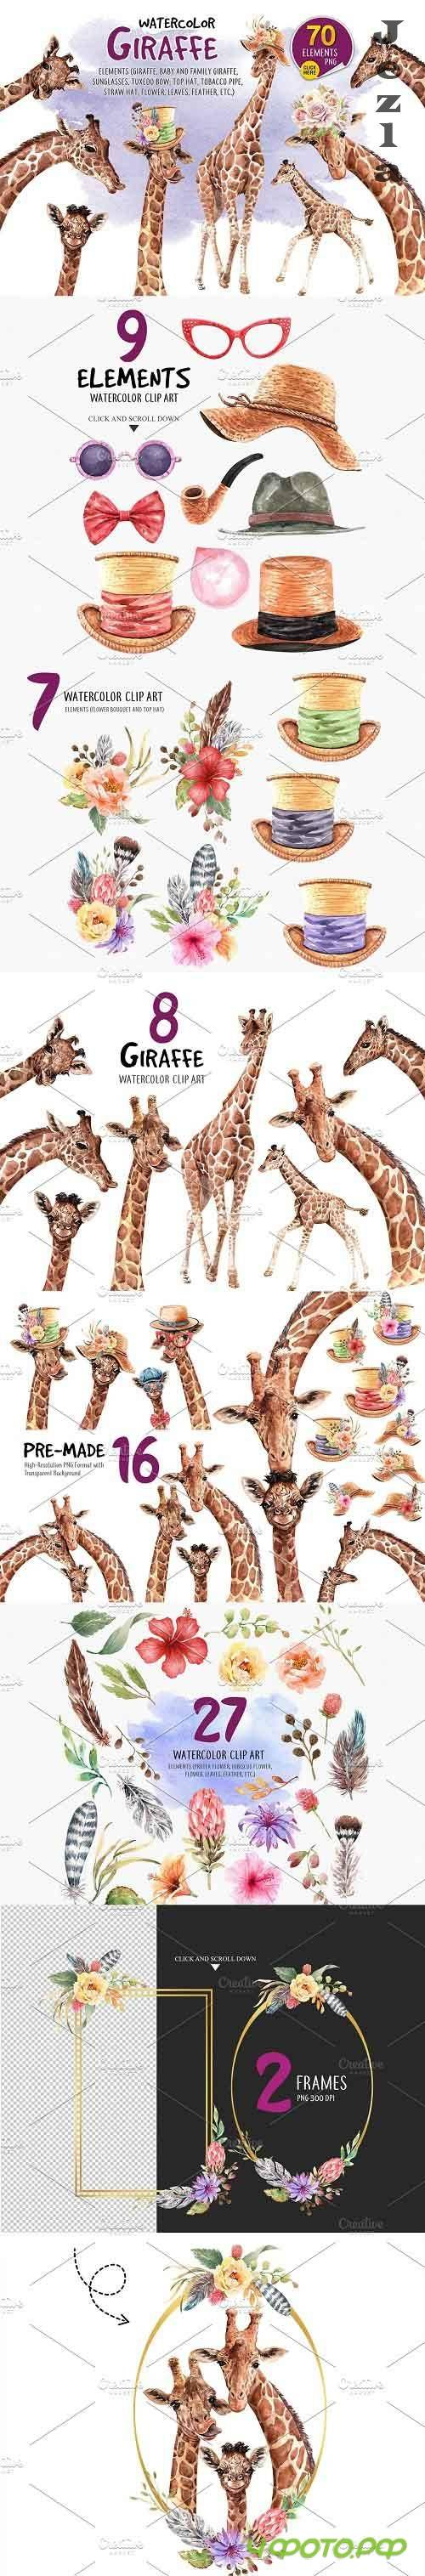 Giraffe watercolor, Paint clip art - 5154802